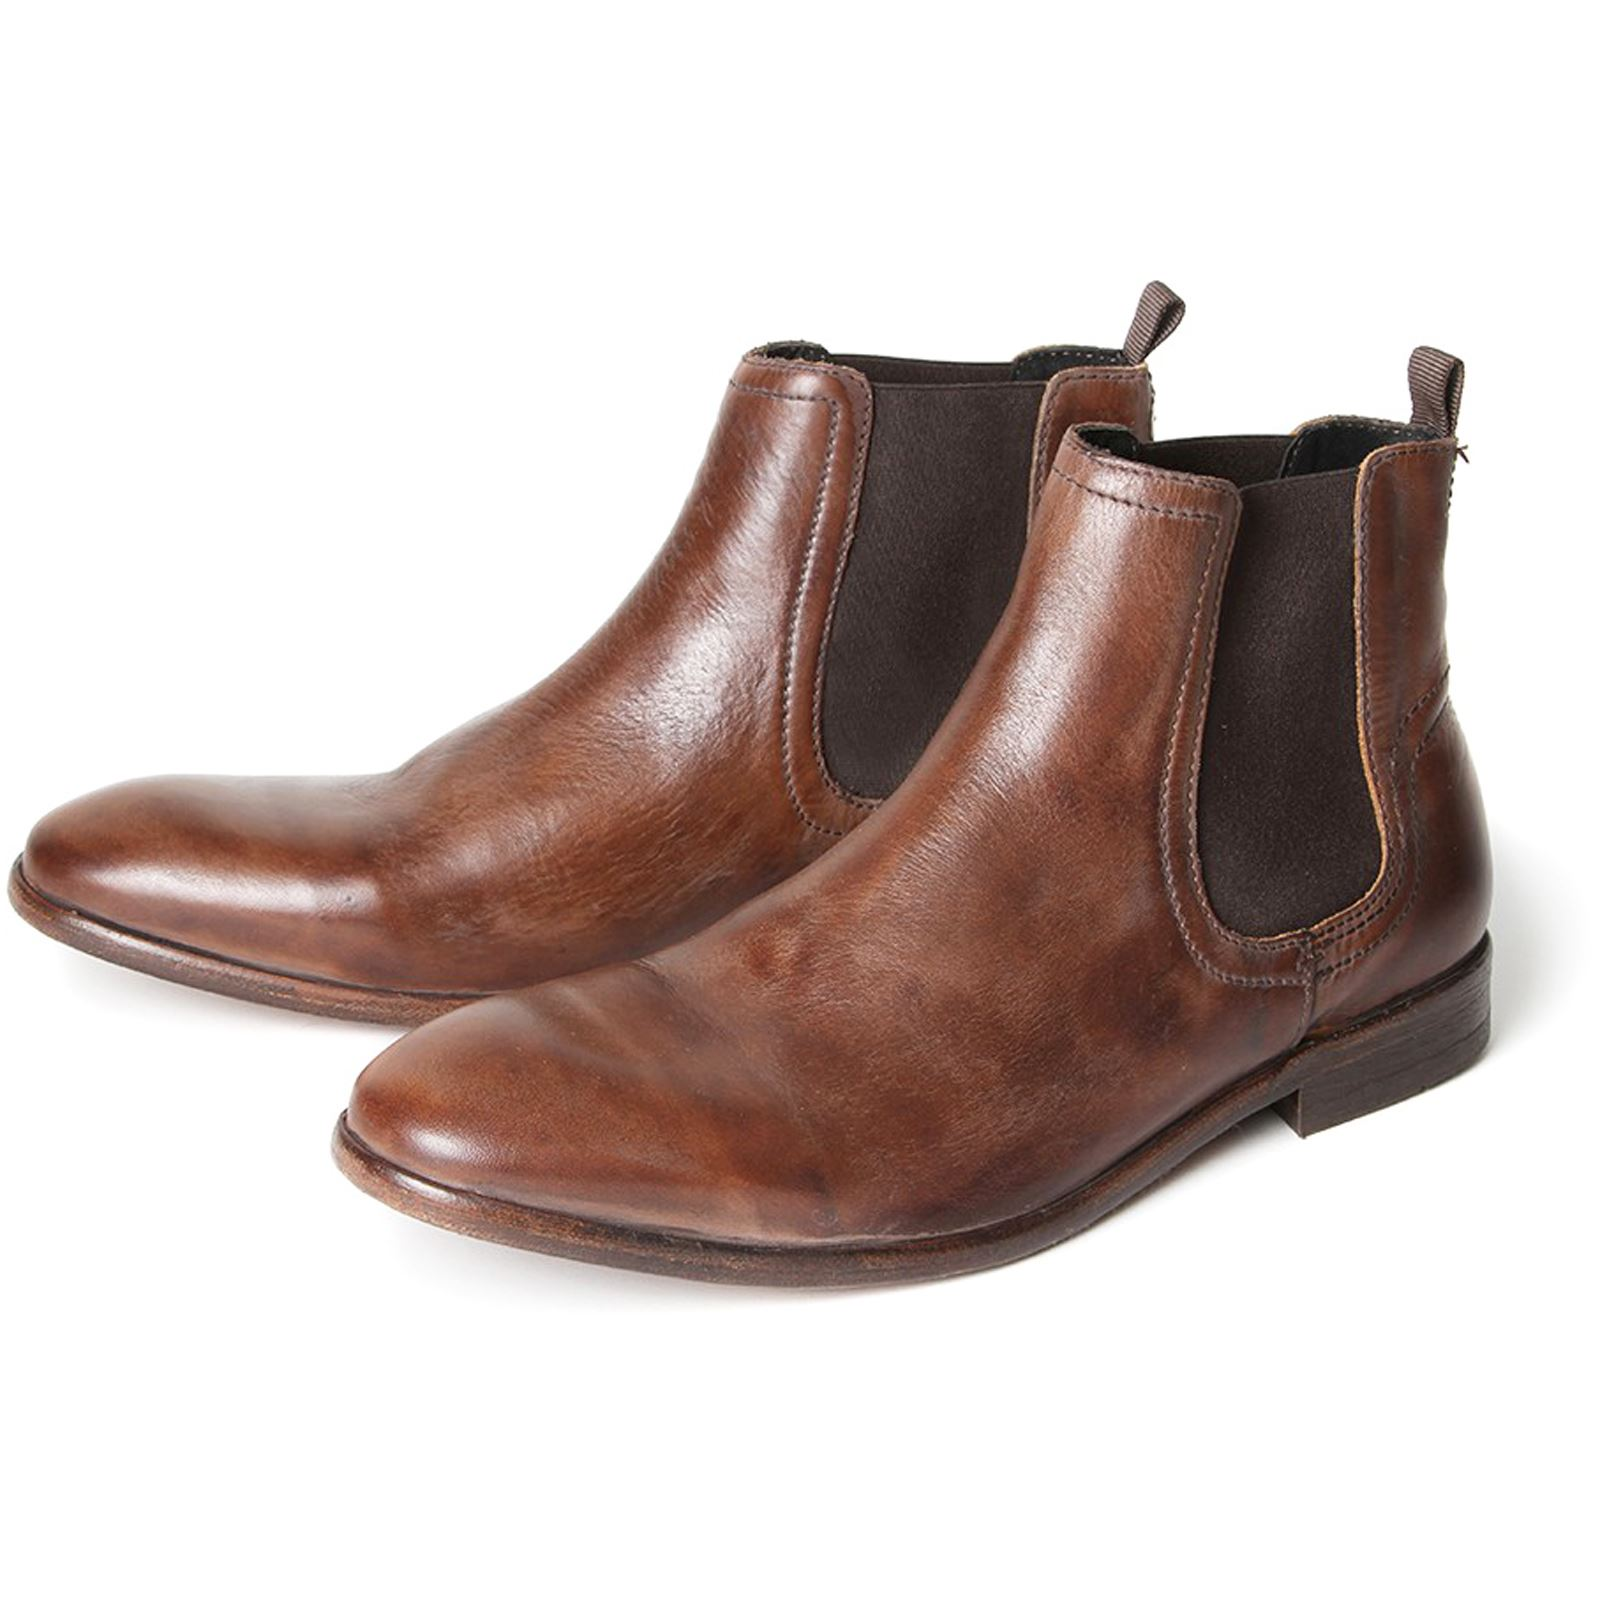 h by hudson boots patterson leather mens chelsea boot